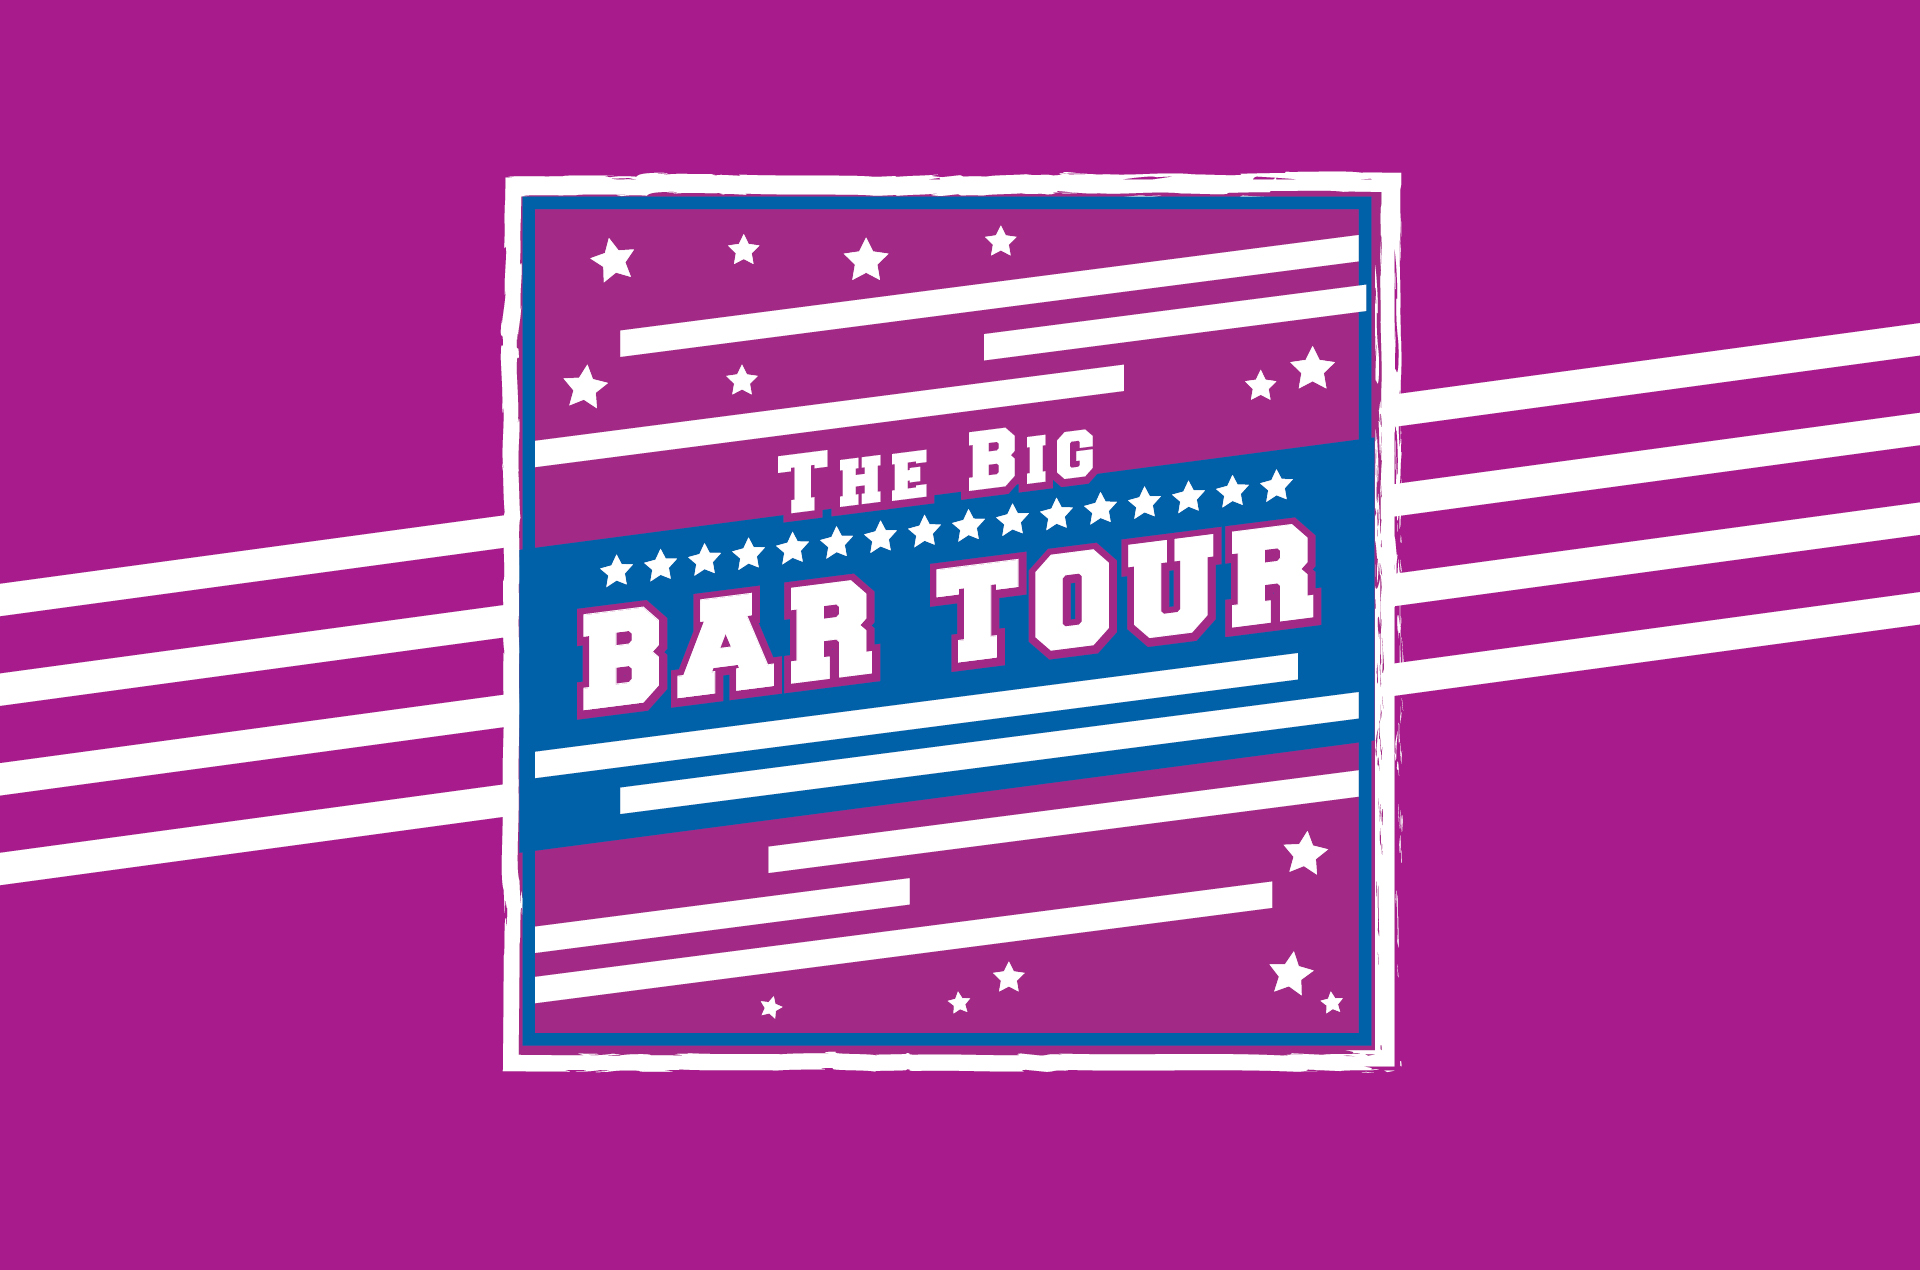 The Big Bar Tour